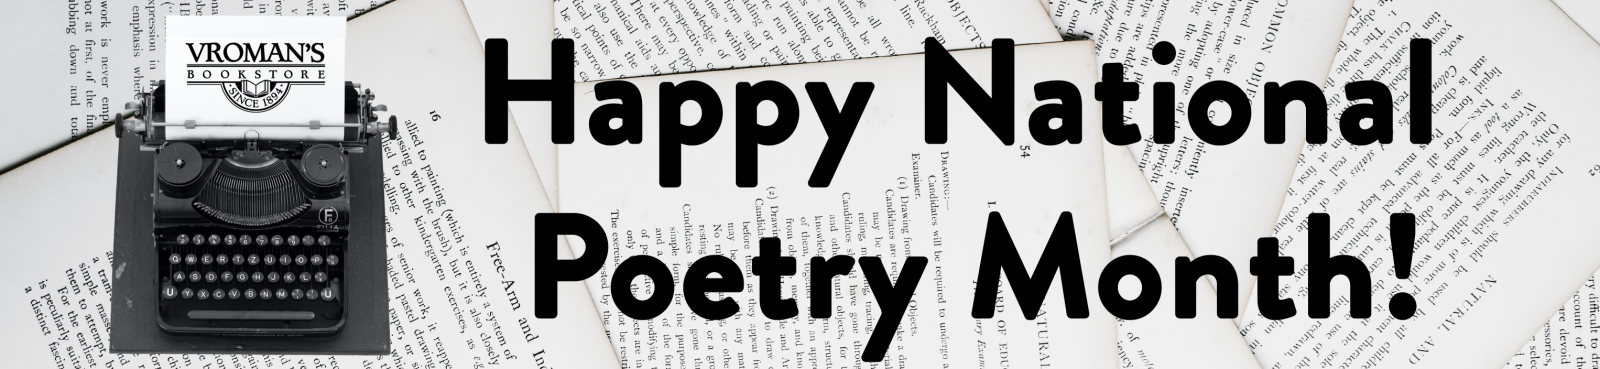 Happy National Poetry Month!